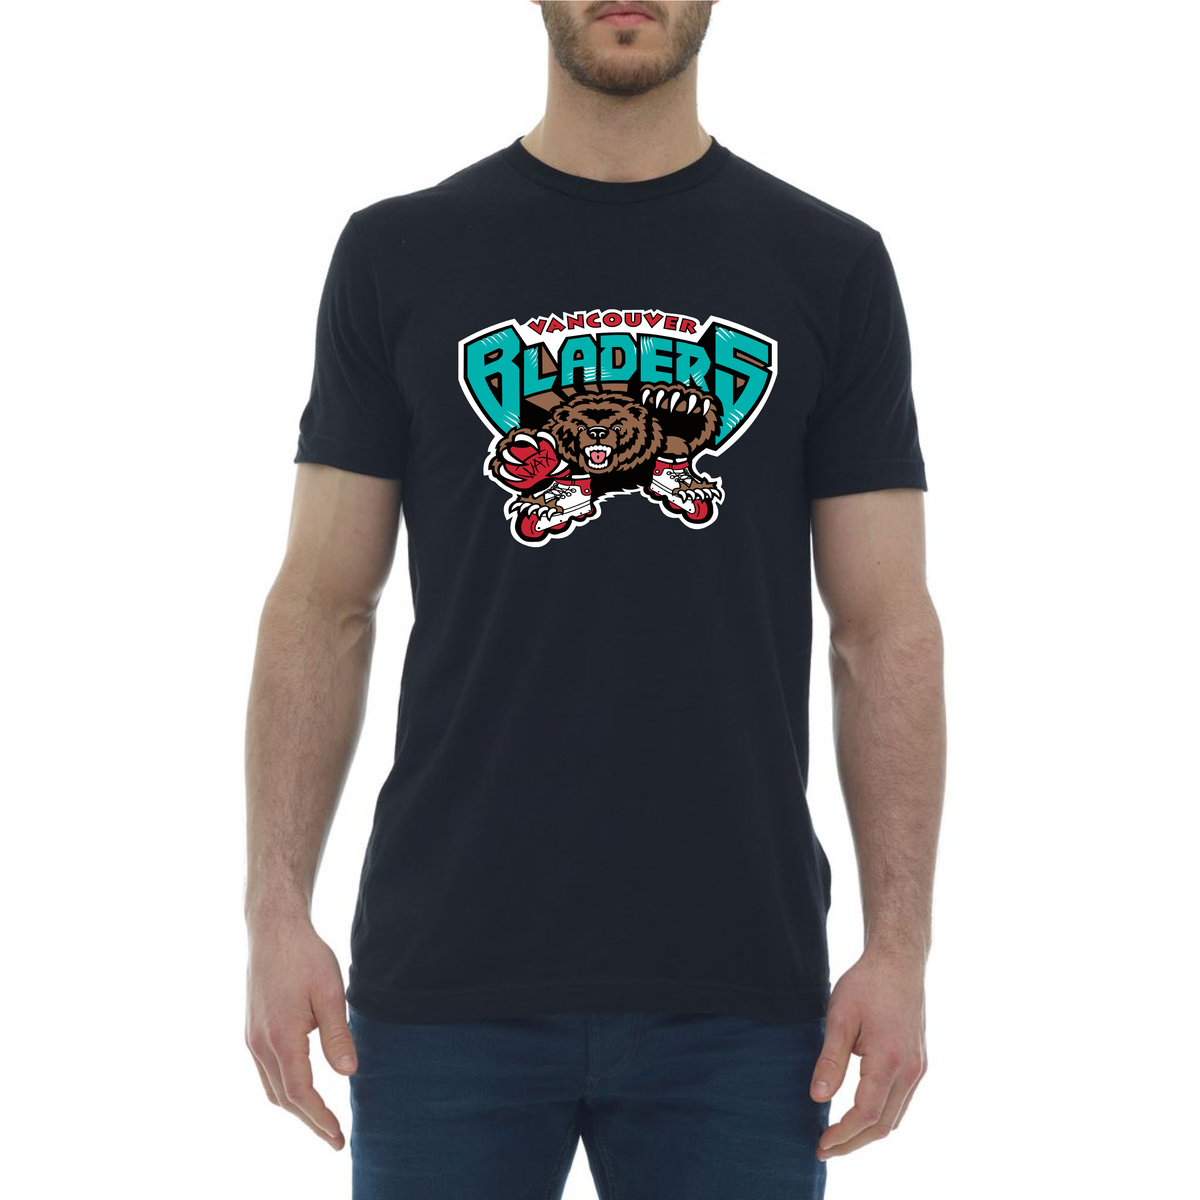 Image of Vancouver Bladers T-Shirt - Pre-Order - Chuck Bailey Black